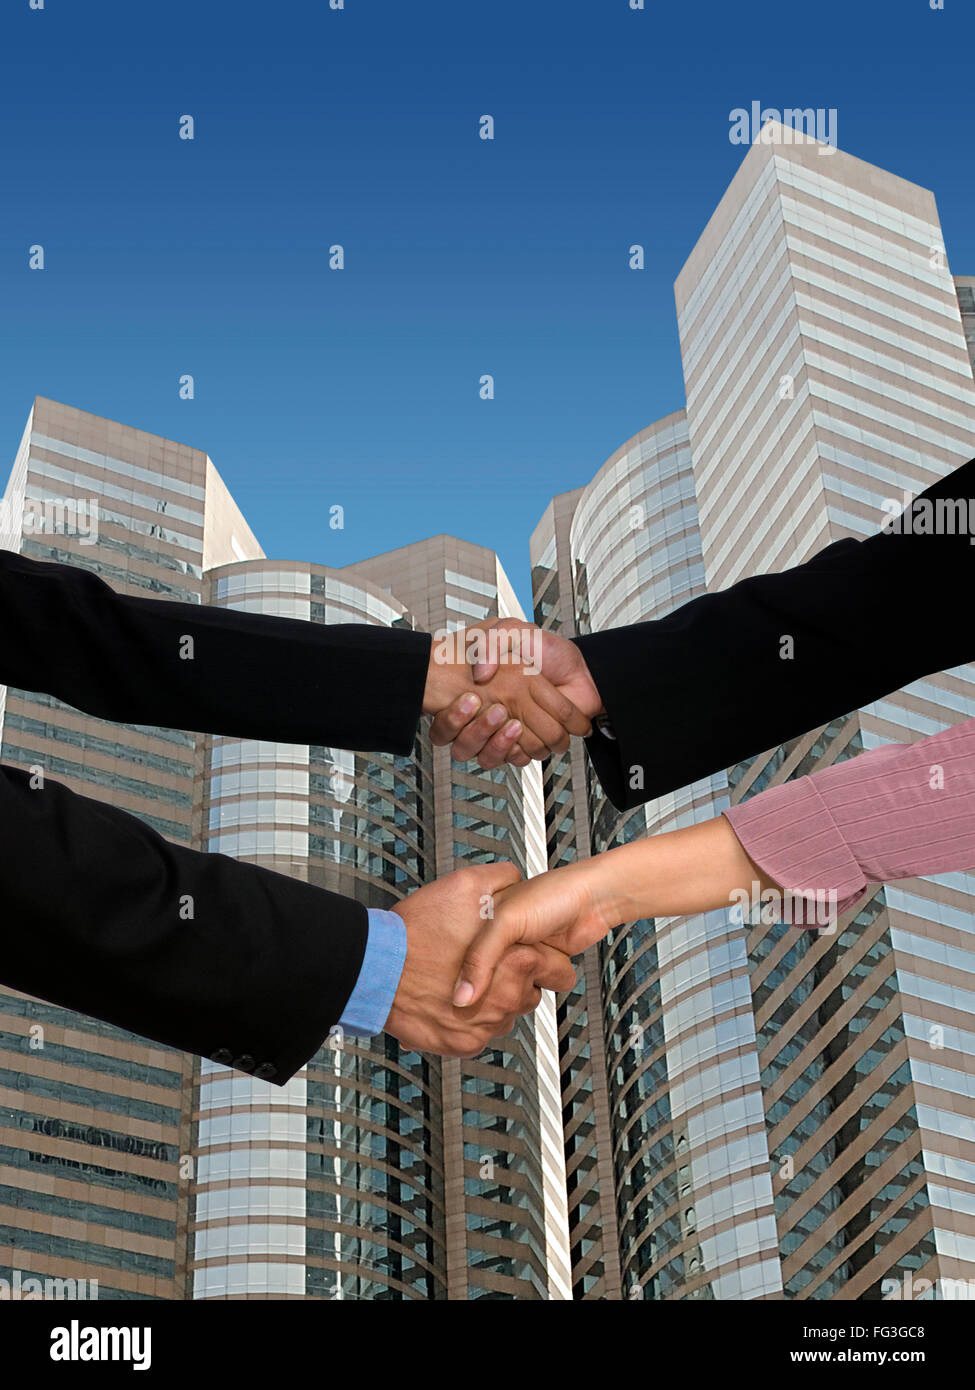 Executives handshaking skyscraper in background MR - Stock Image